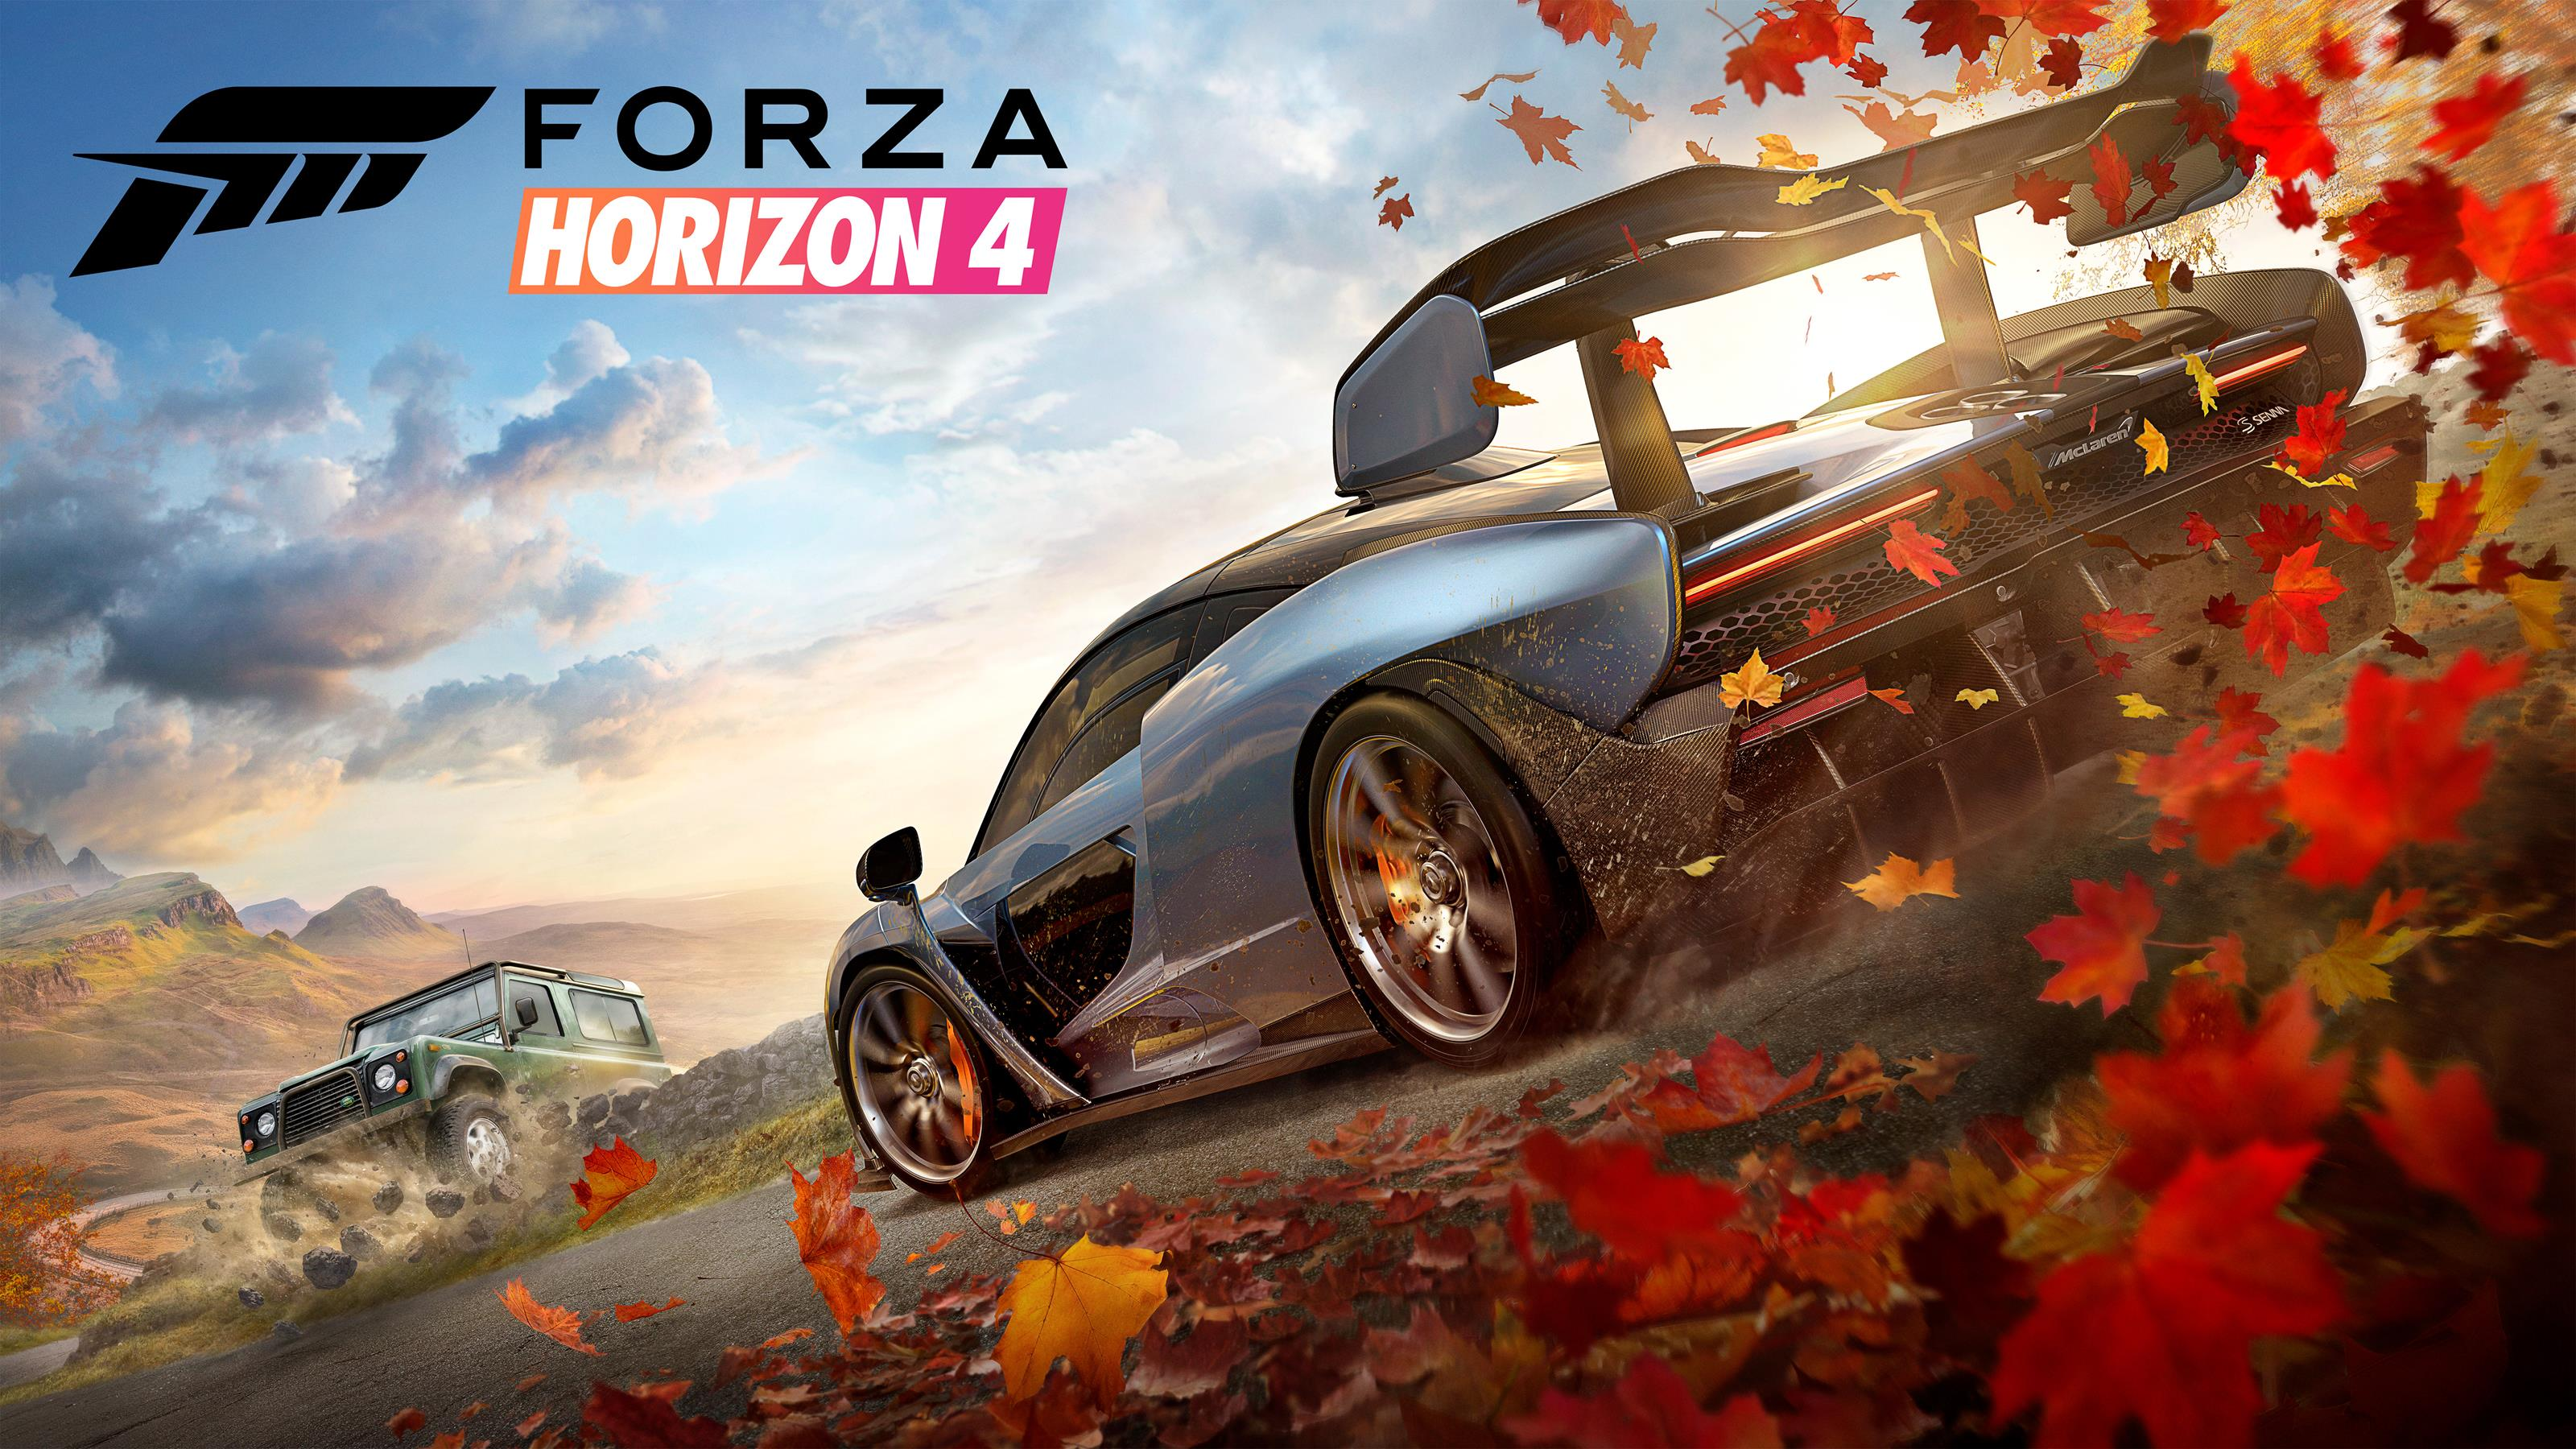 Forza Horizon 4 pre-load is now live on PC, Xbox One